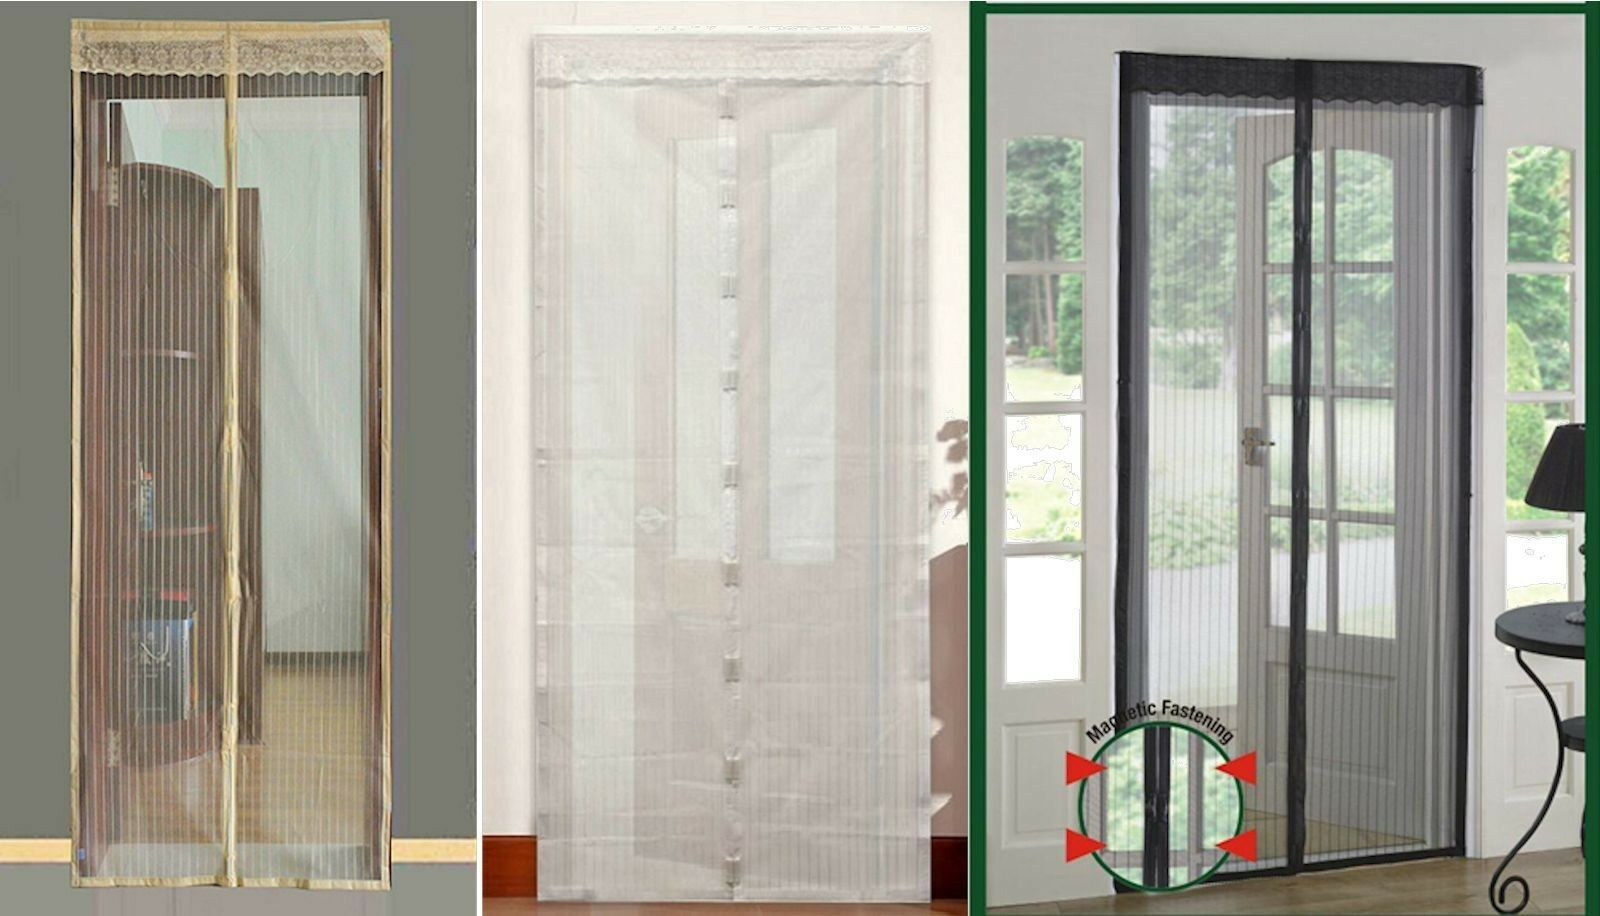 Snap Screen Door Mesh Magnetic Auto Fastening Fly Bug Insect Net